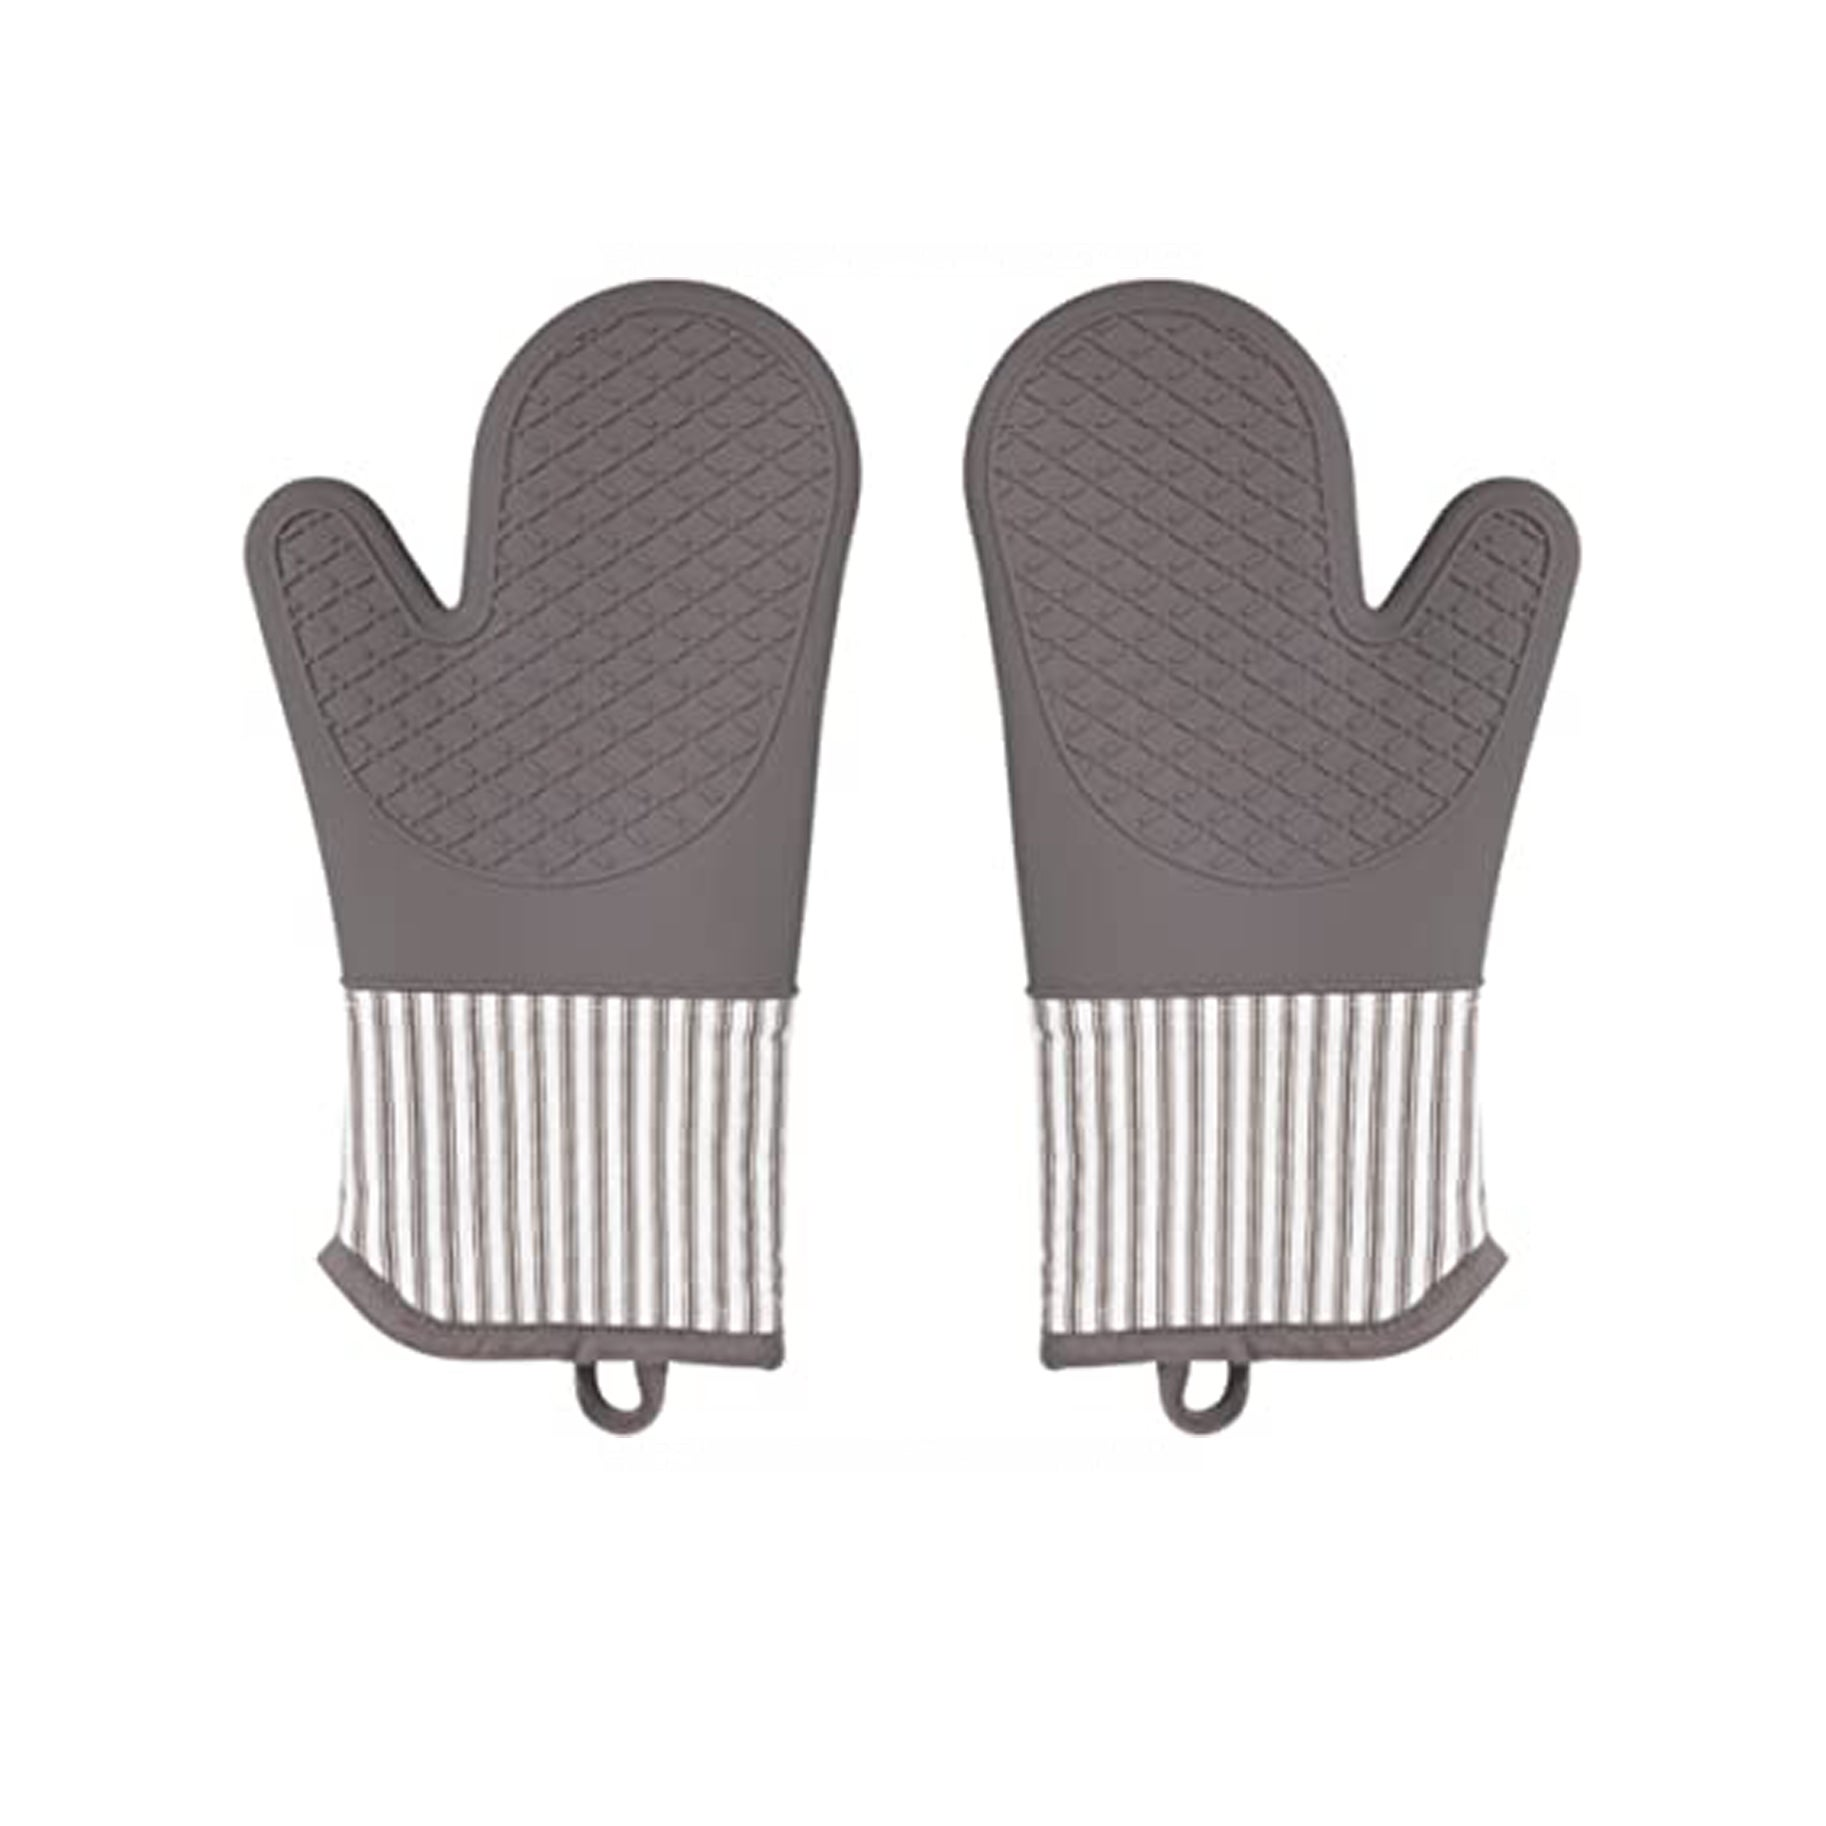 The Best Oven Mitts Option: KAF Home Chefs Oven Mitts